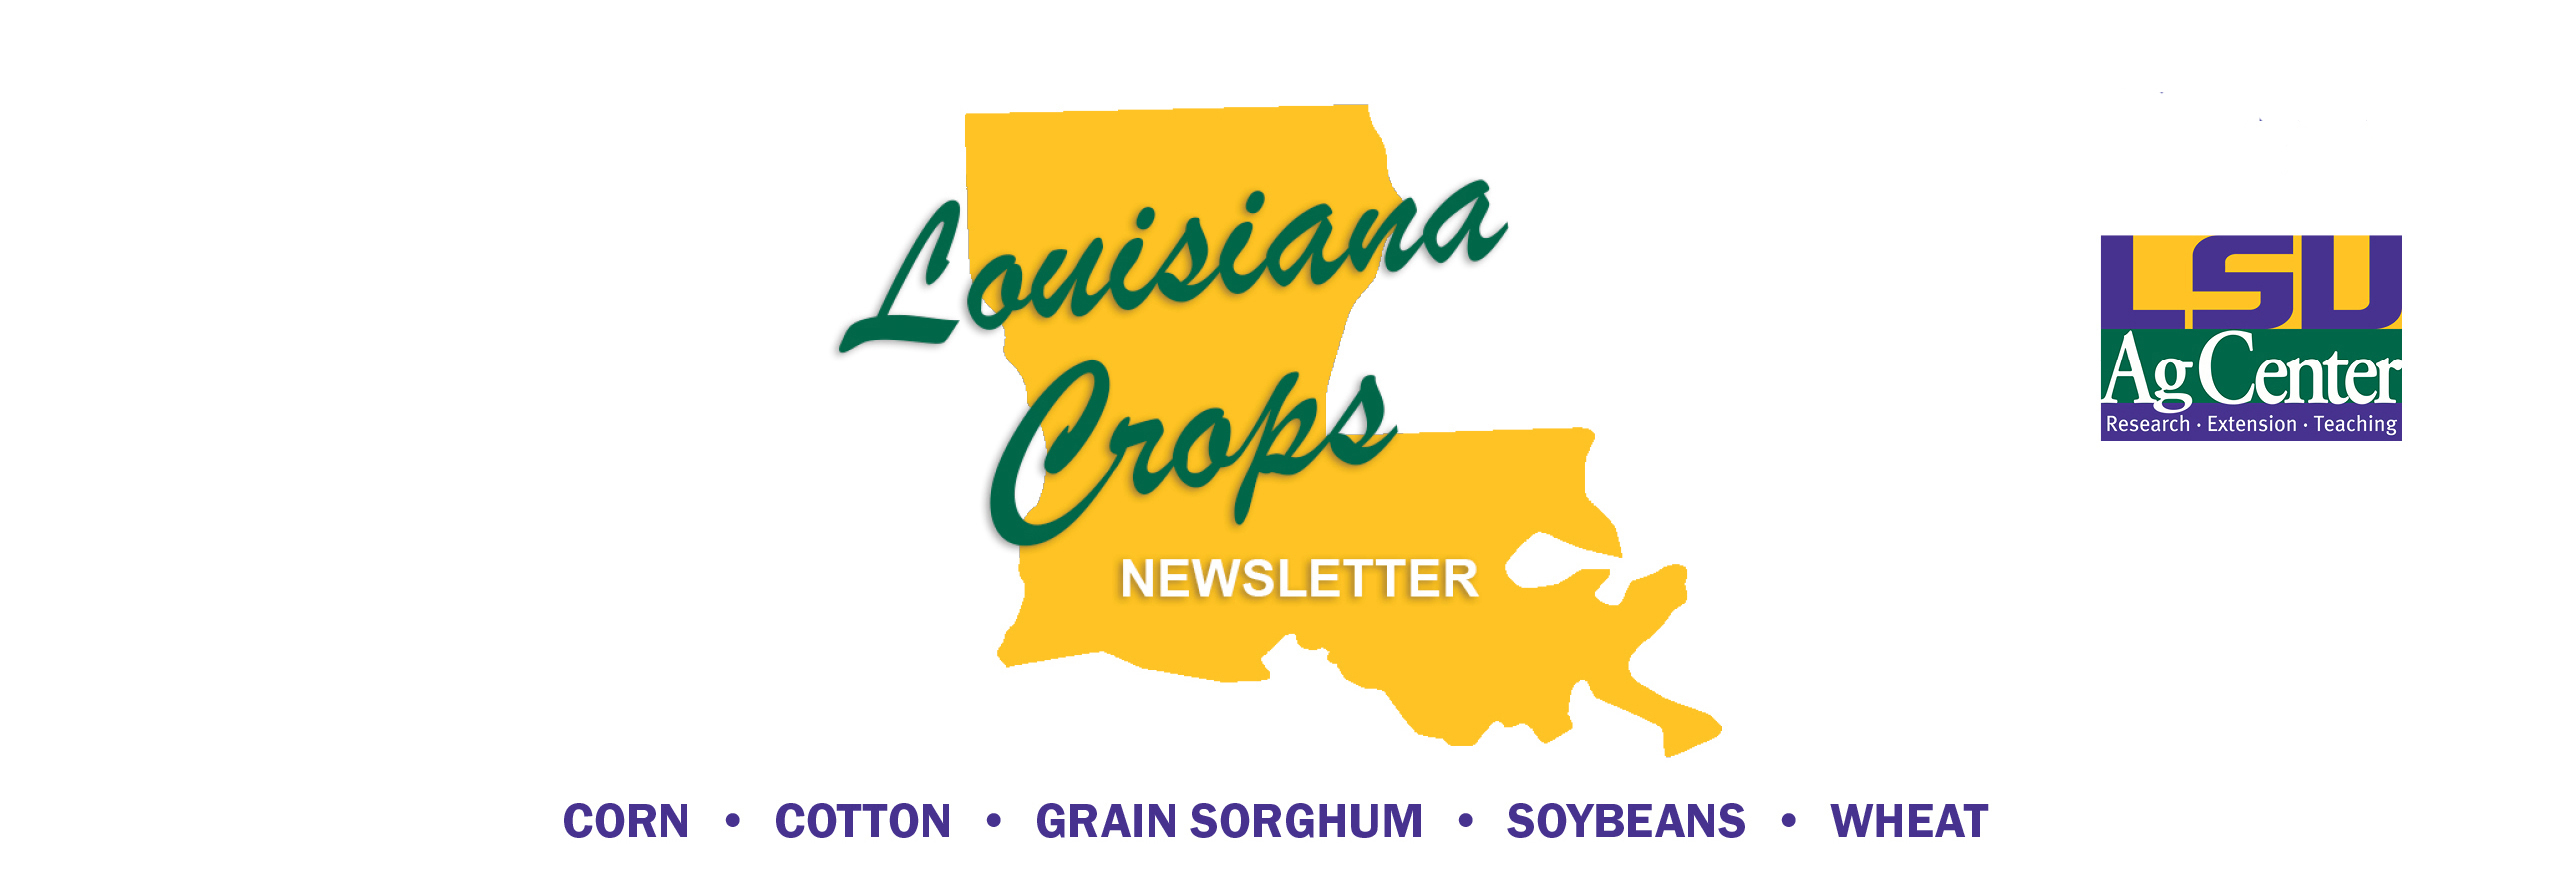 Louisiana Crops Newsletter Plain Banner.jpg thumbnail